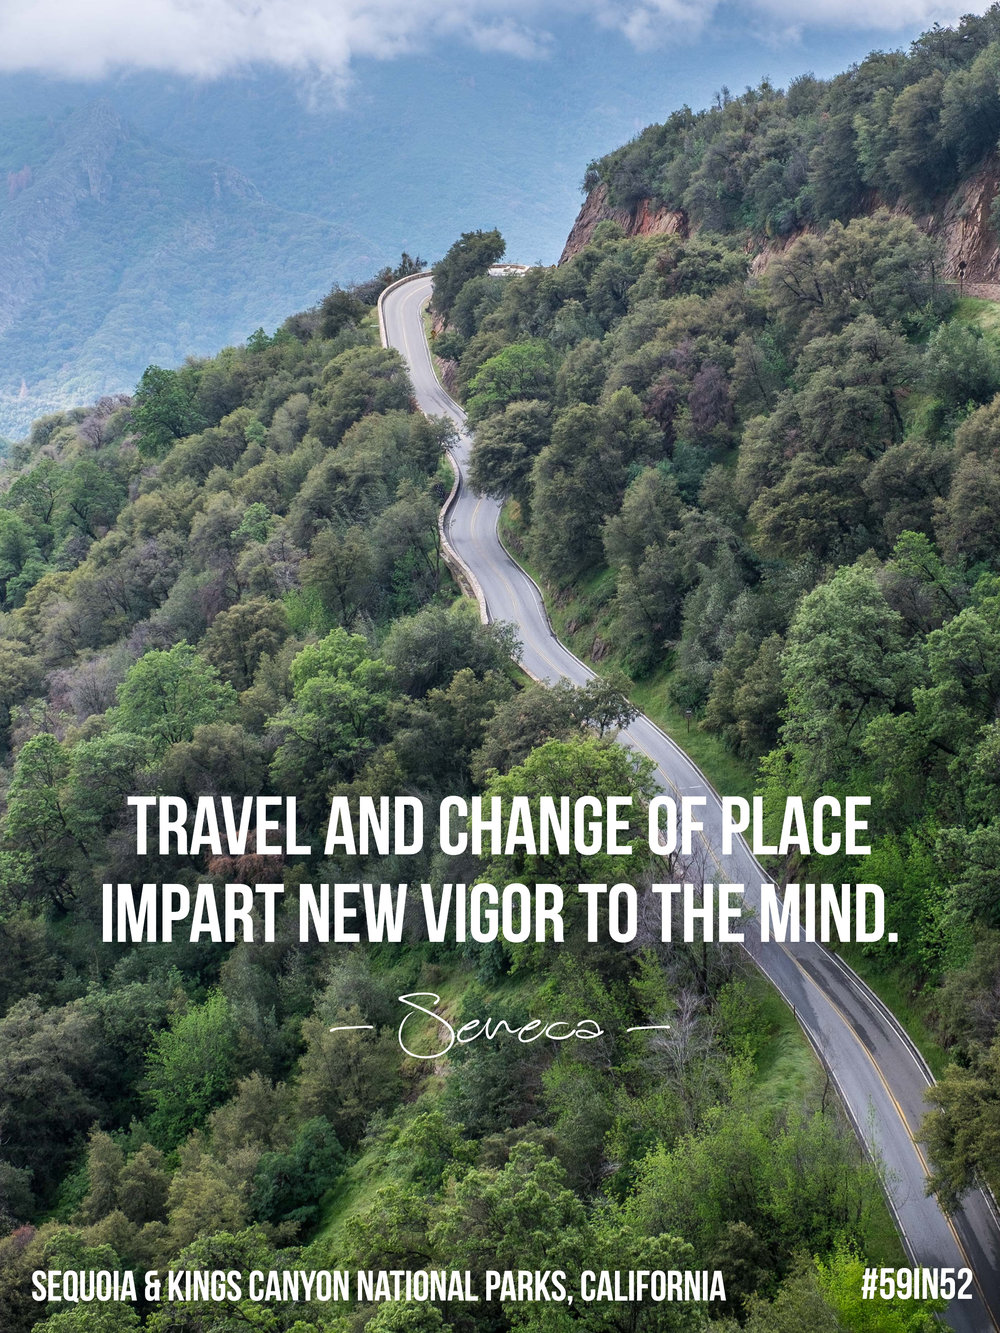 'Travel and change of place impart new vigor to the mind.' - Seneca